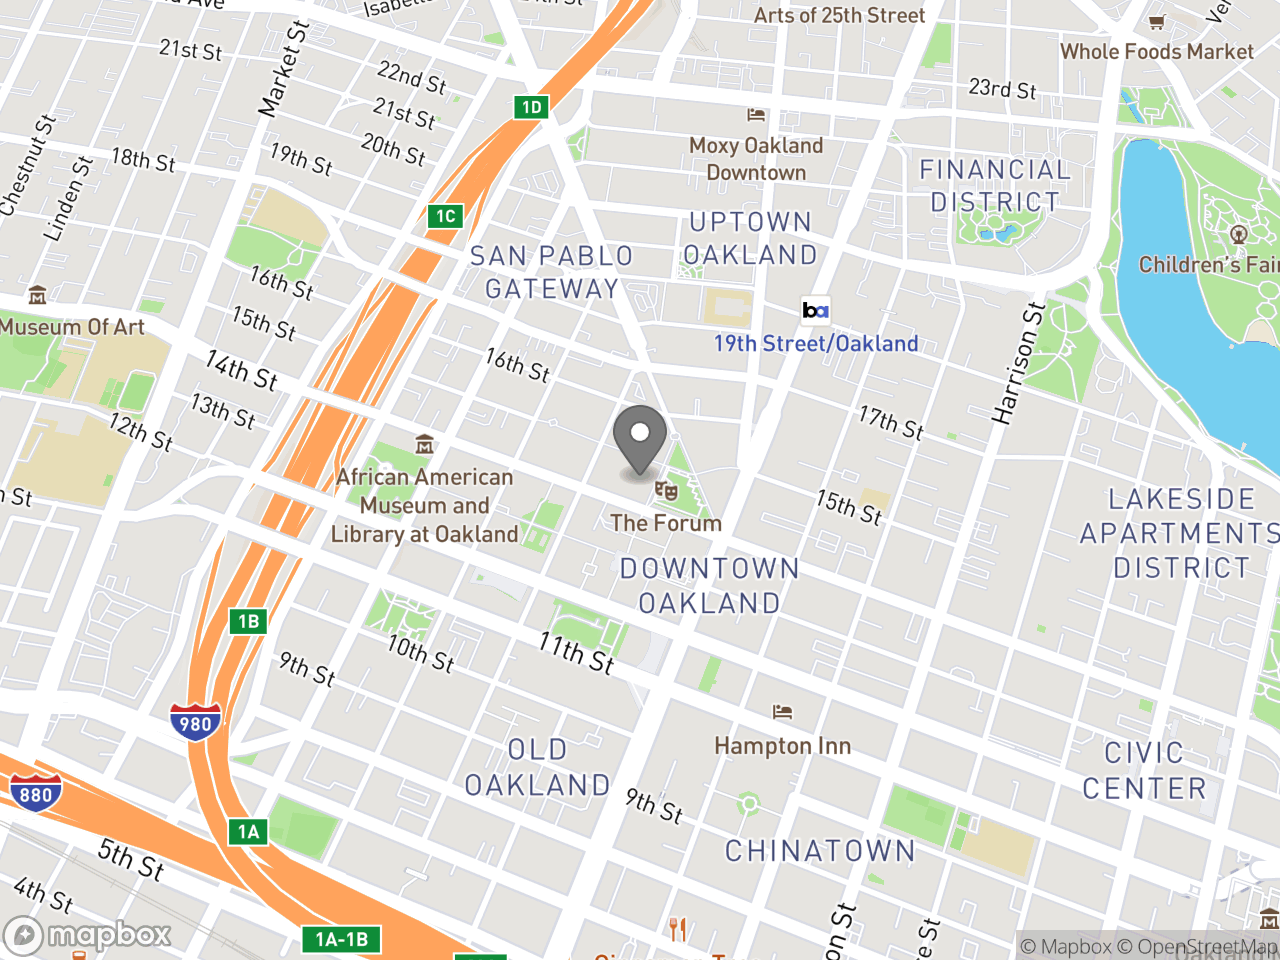 Map location for Rent Board Panel Meeting October 17, 2019, located at 1 Frank H. Ogawa Plaza in Oakland, CA 94612